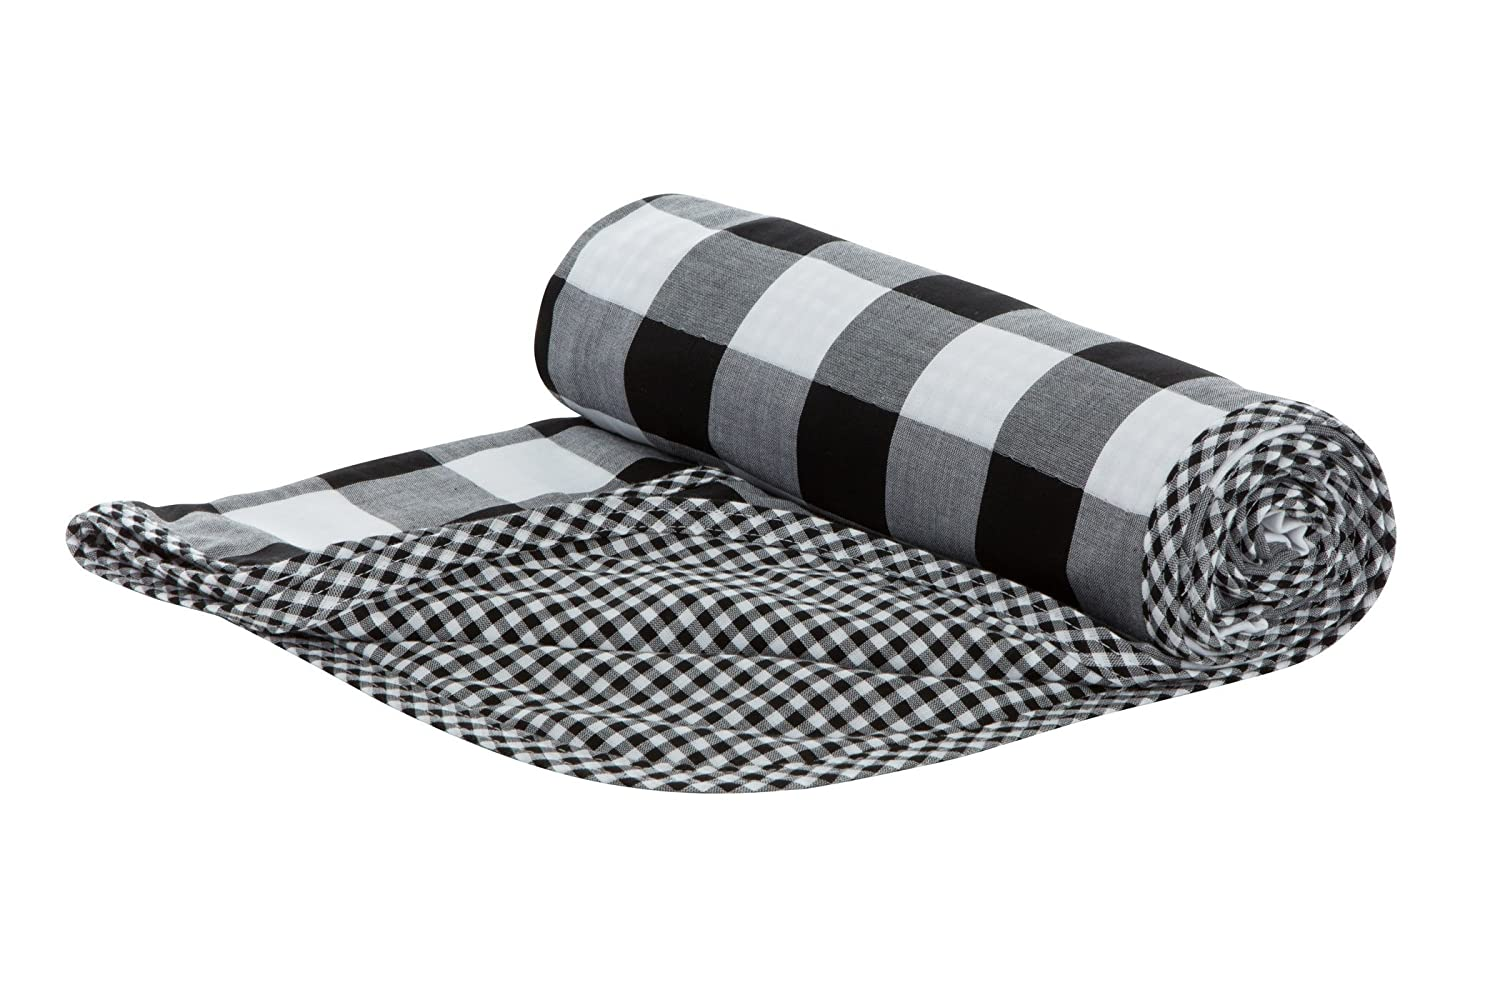 Henry and Bros. Large Double Layer Toddler Blanket, Girl Nap Blanket/Boy Nap Blanket, Light Blanket For Kids, Kids Quilt Patterns Made Of 100% Cotton (Black and White Buffalo Check) Henry and Brothers TBRRF15